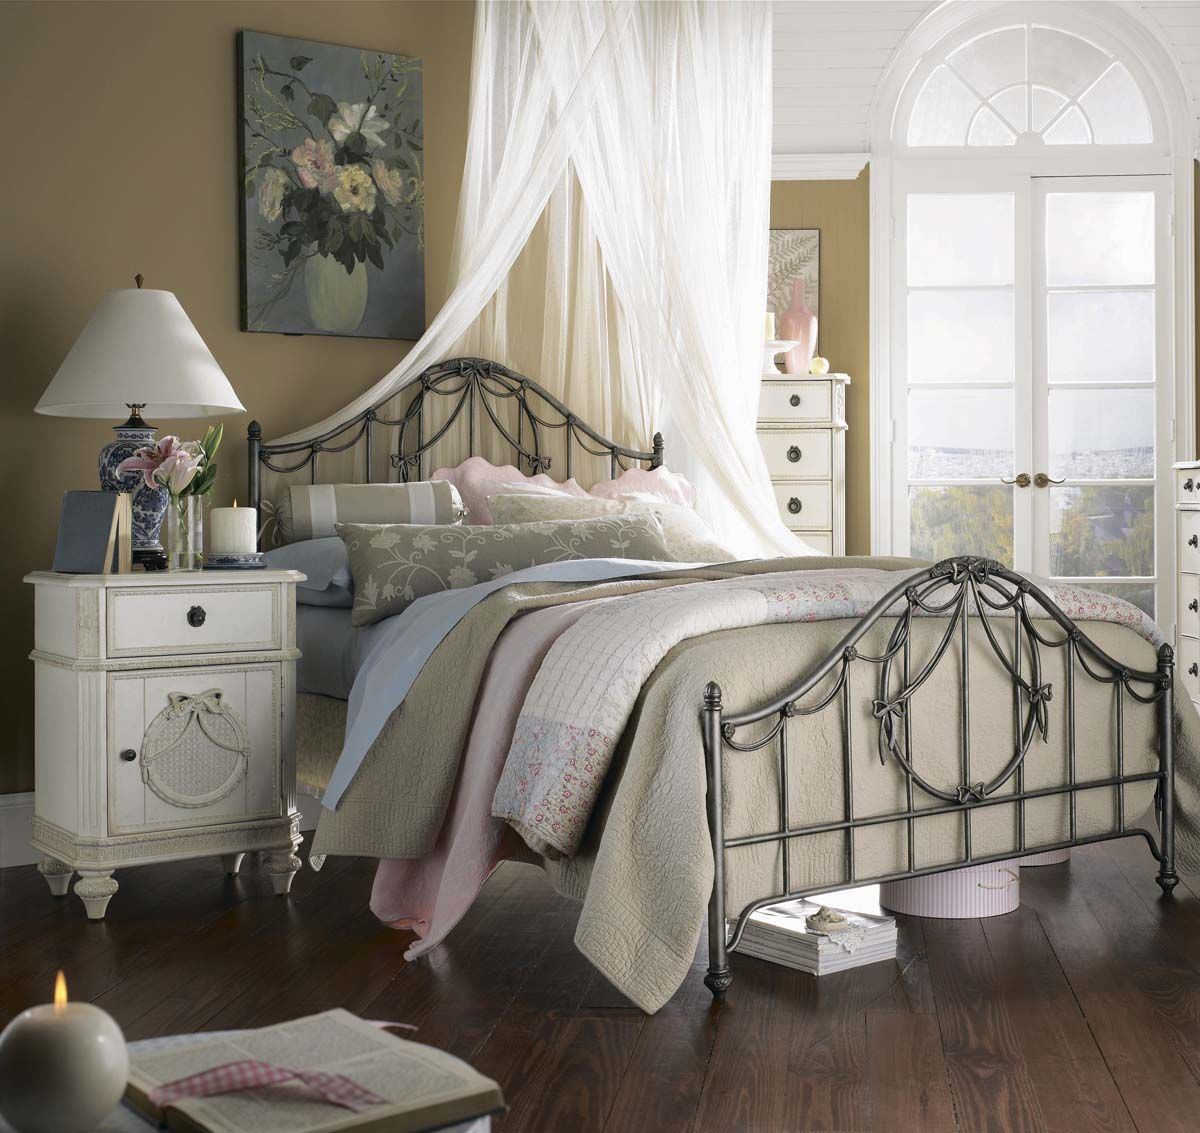 5 Vintage Bedroom Sets Ideas For 2015 Part 82